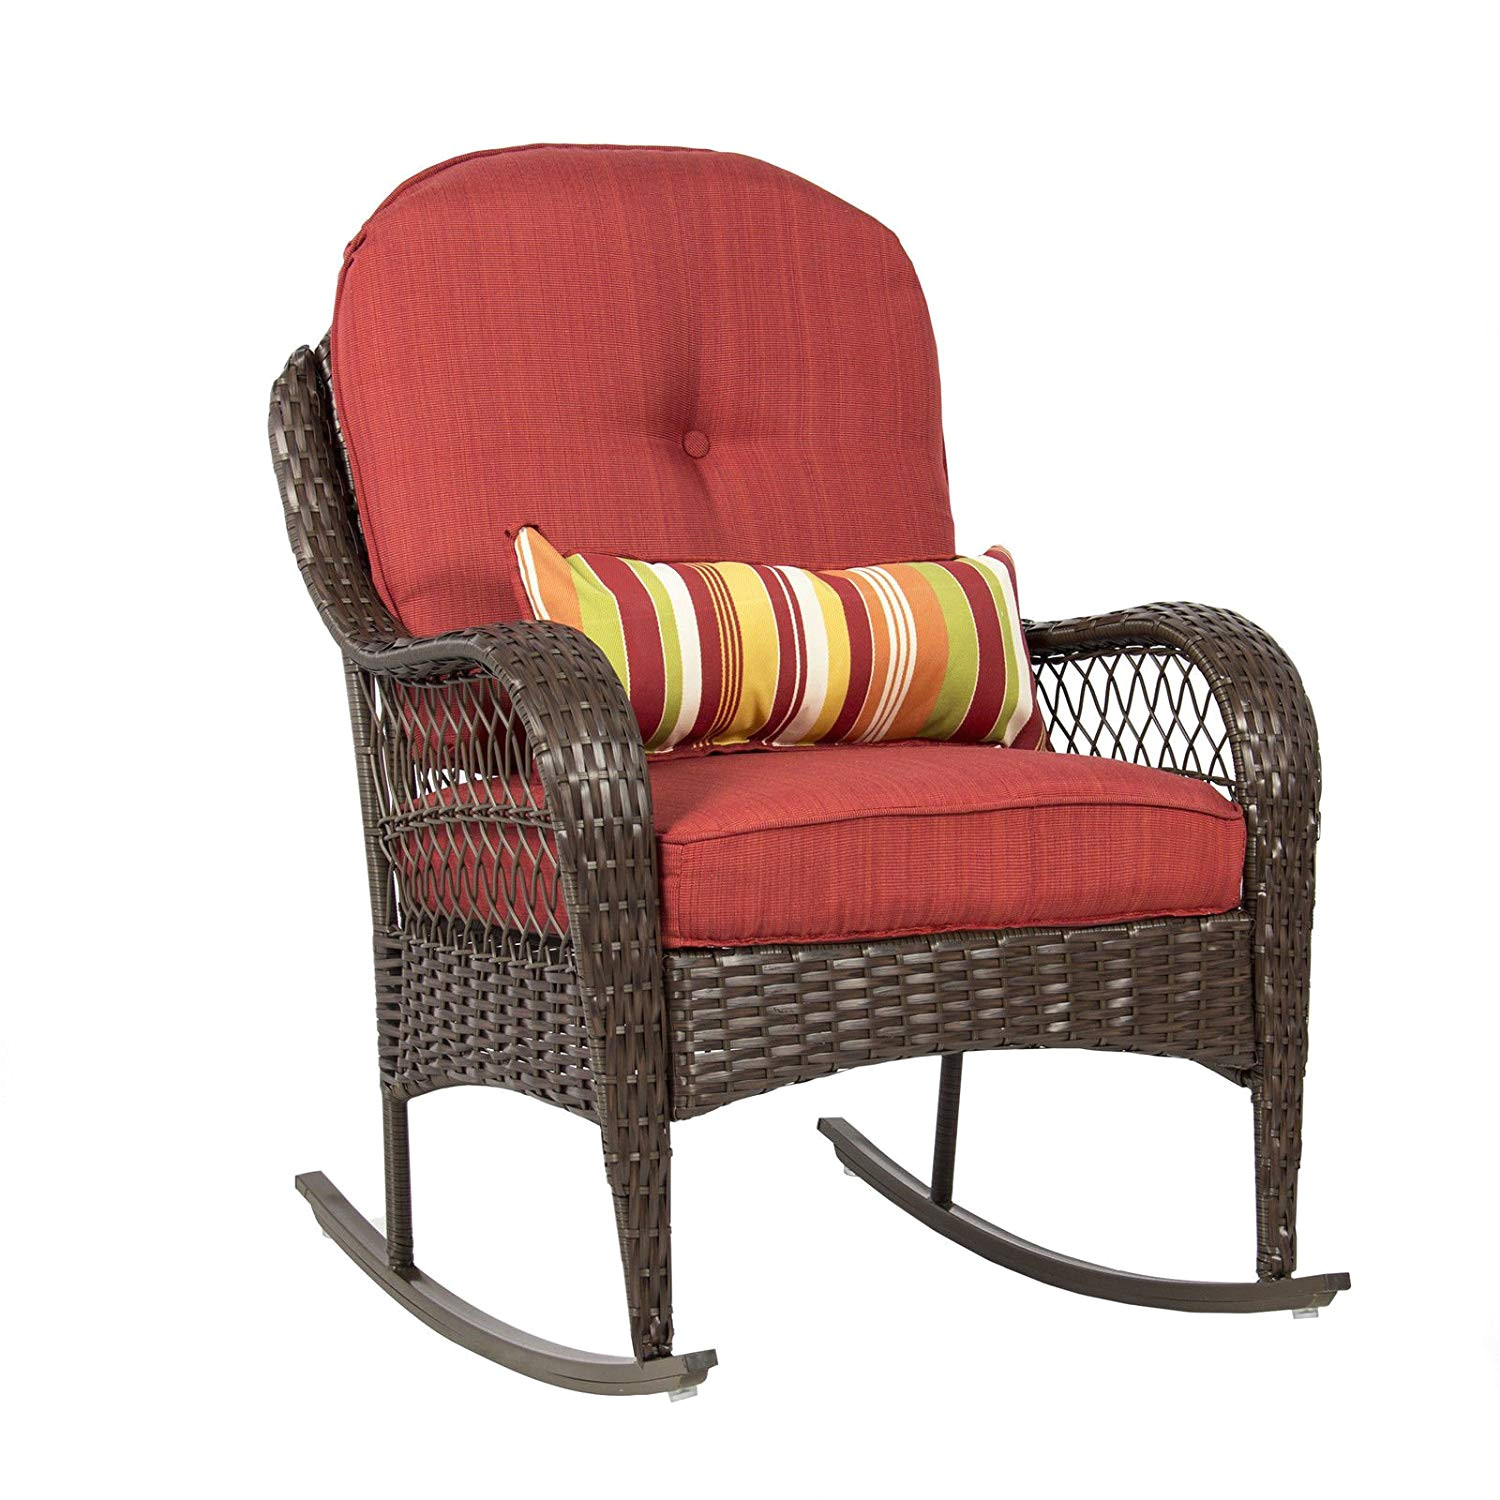 amazon com best choice products wicker rocking chair patio porch deck all weather proof w cushions garden outdoor